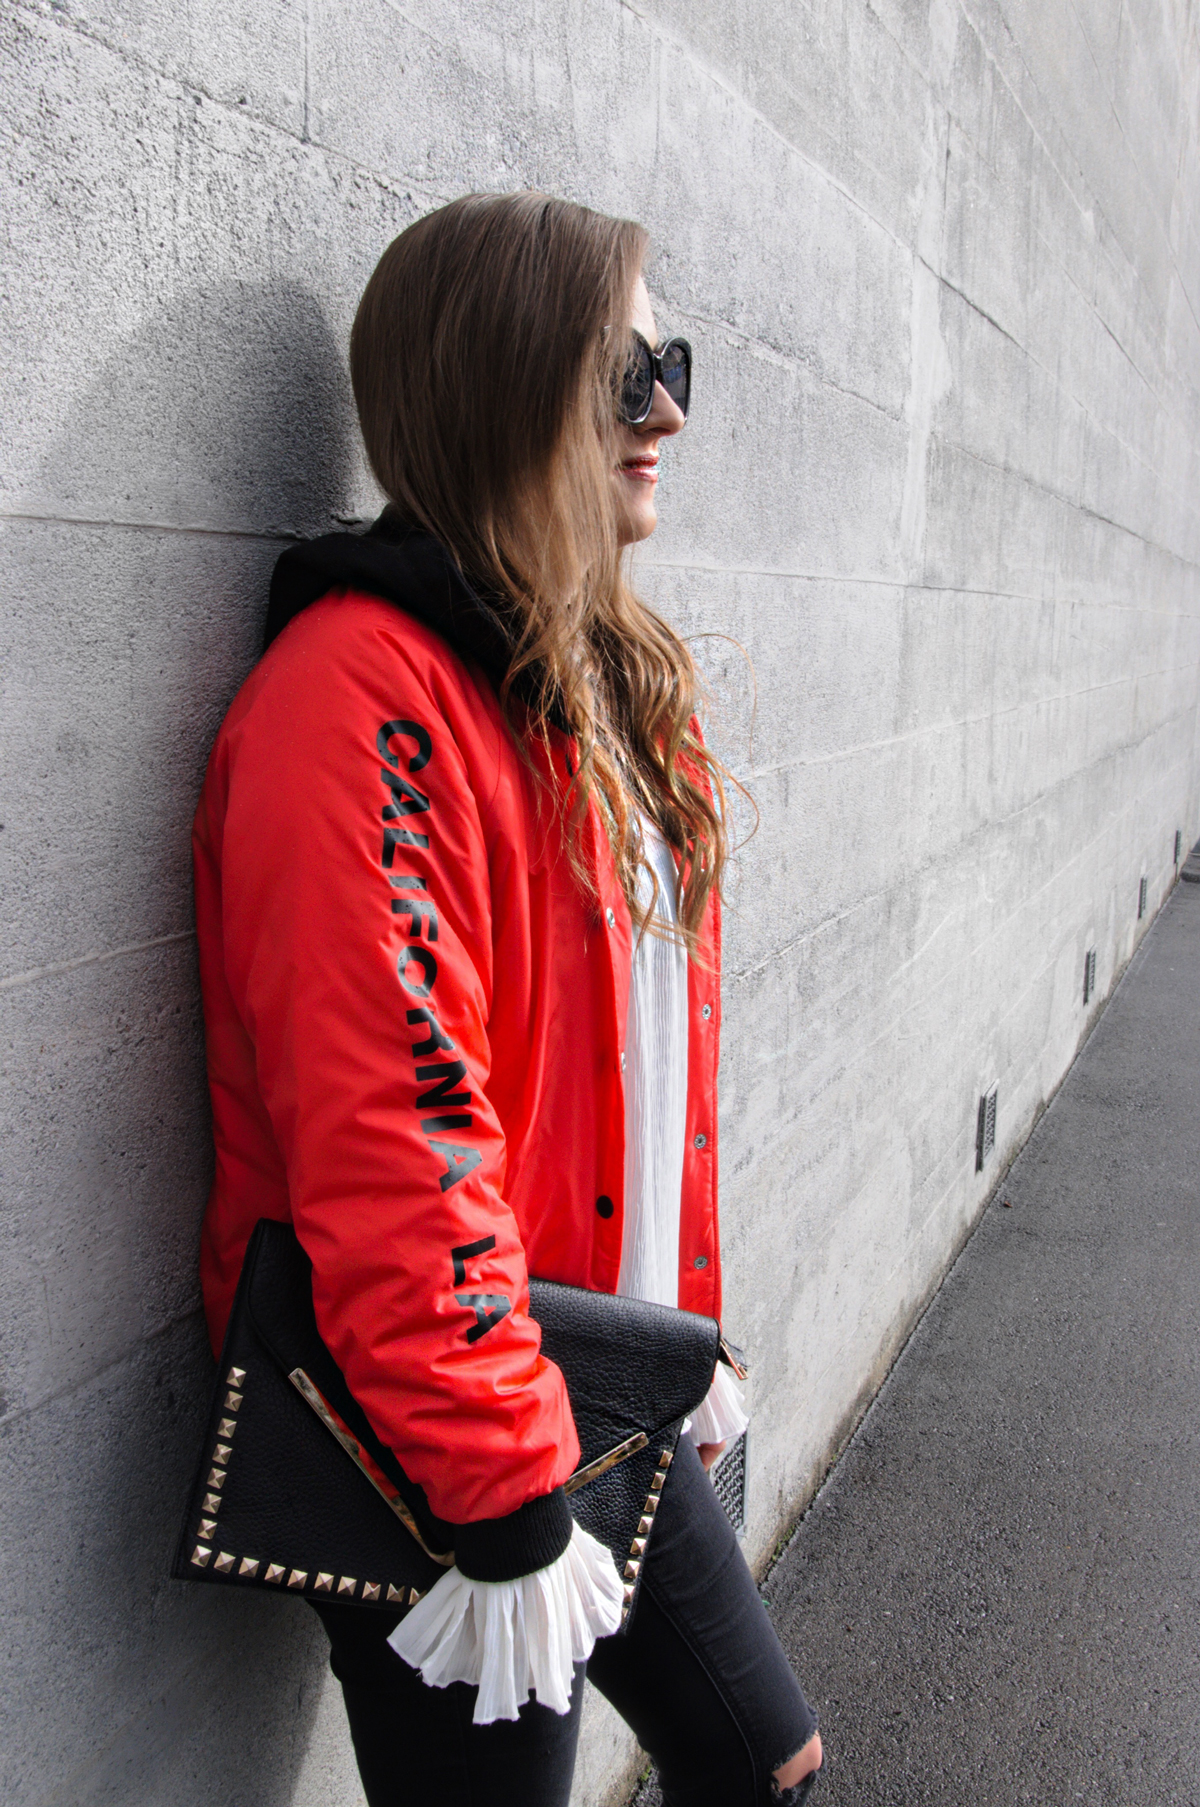 Andrea from fashion blog Strawberries n Champagne in Lucerne (Switzerland) wearing a red bomber jacket from Forever 21 for winter.